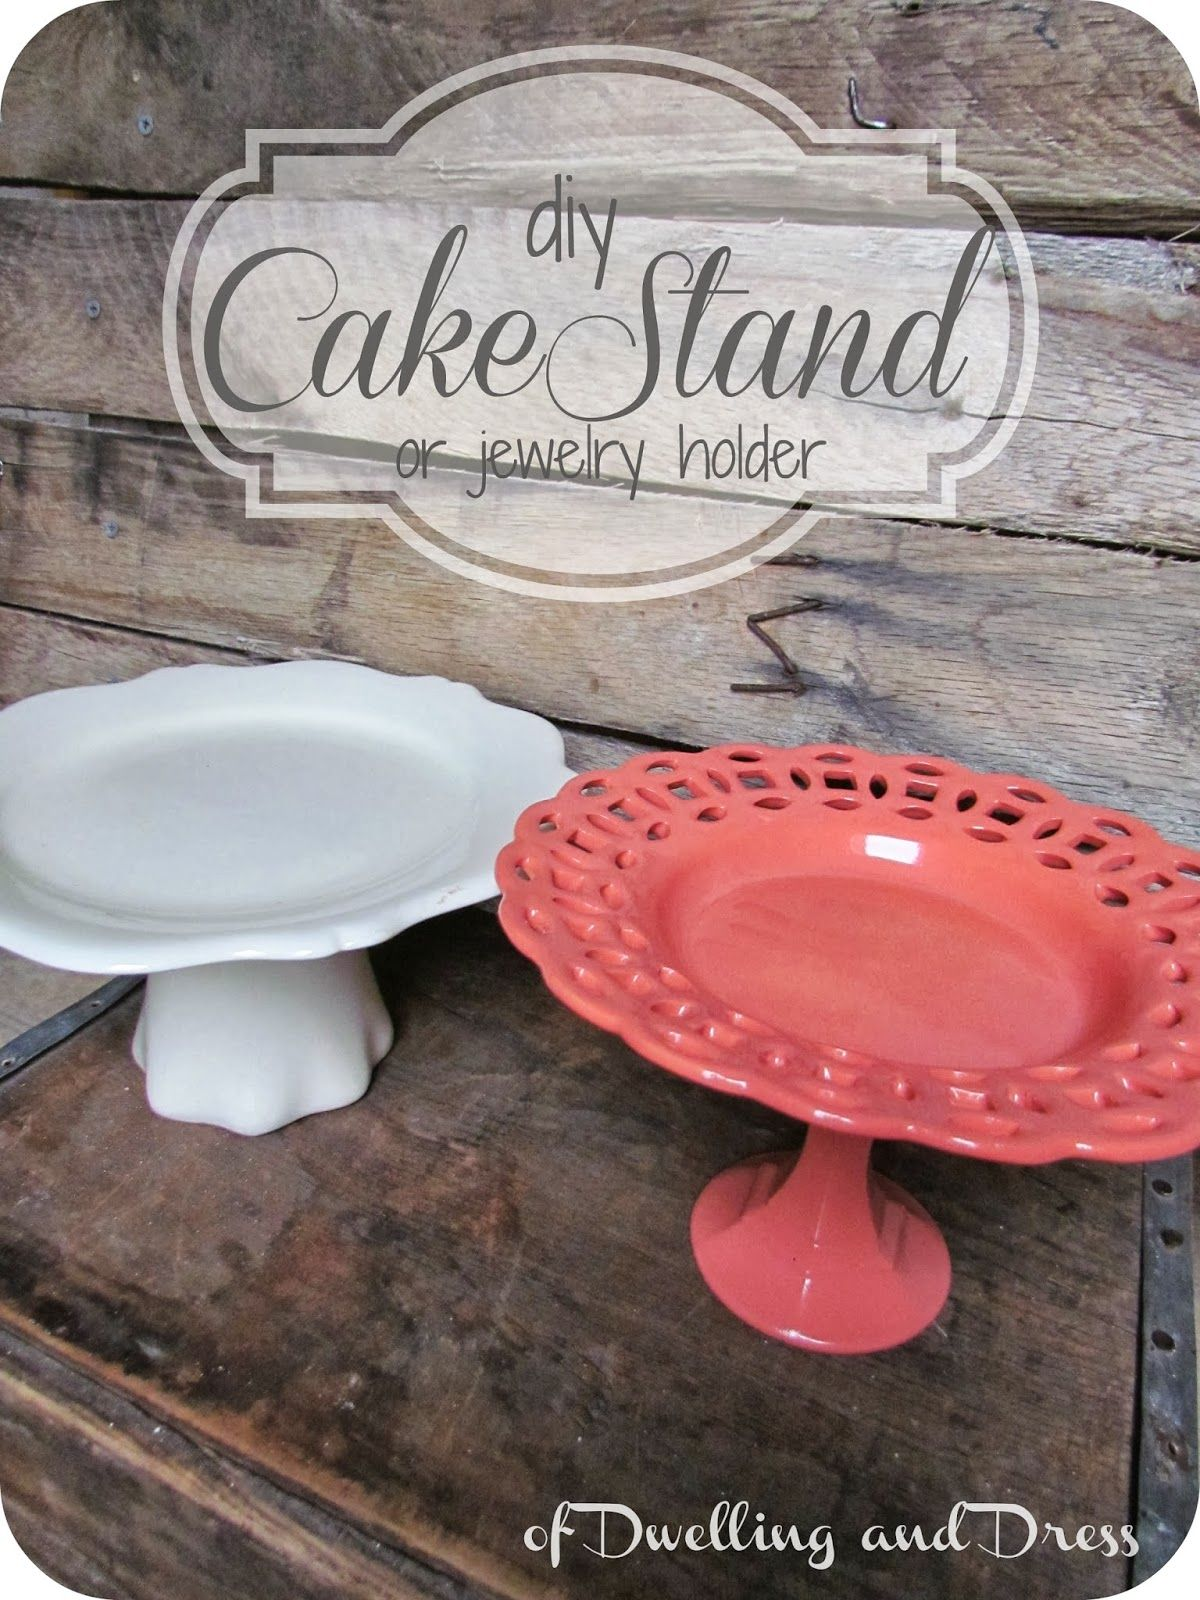 of Dwelling and Dress DIY Cake Stand  or jewelry holder  & I absolutely love the idea of using something for something else ...